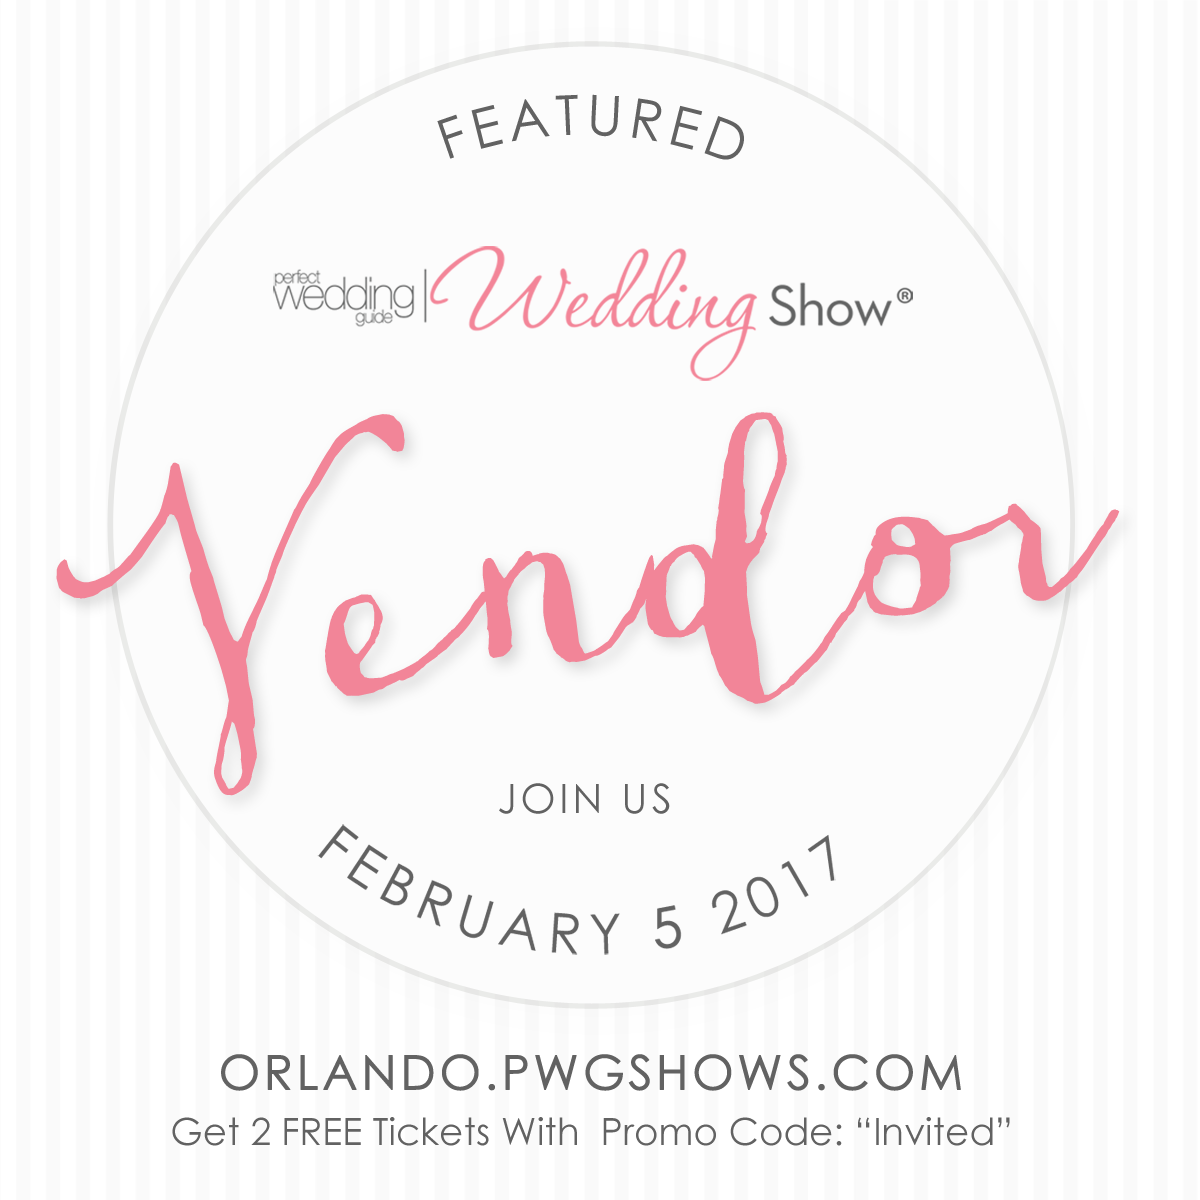 Join Us At Orlando S Perfect Wedding Guide Wedding Show And Use Promo Code Invited To Save Wedding Show Orlando Wedding Planner Perfect Wedding Guide